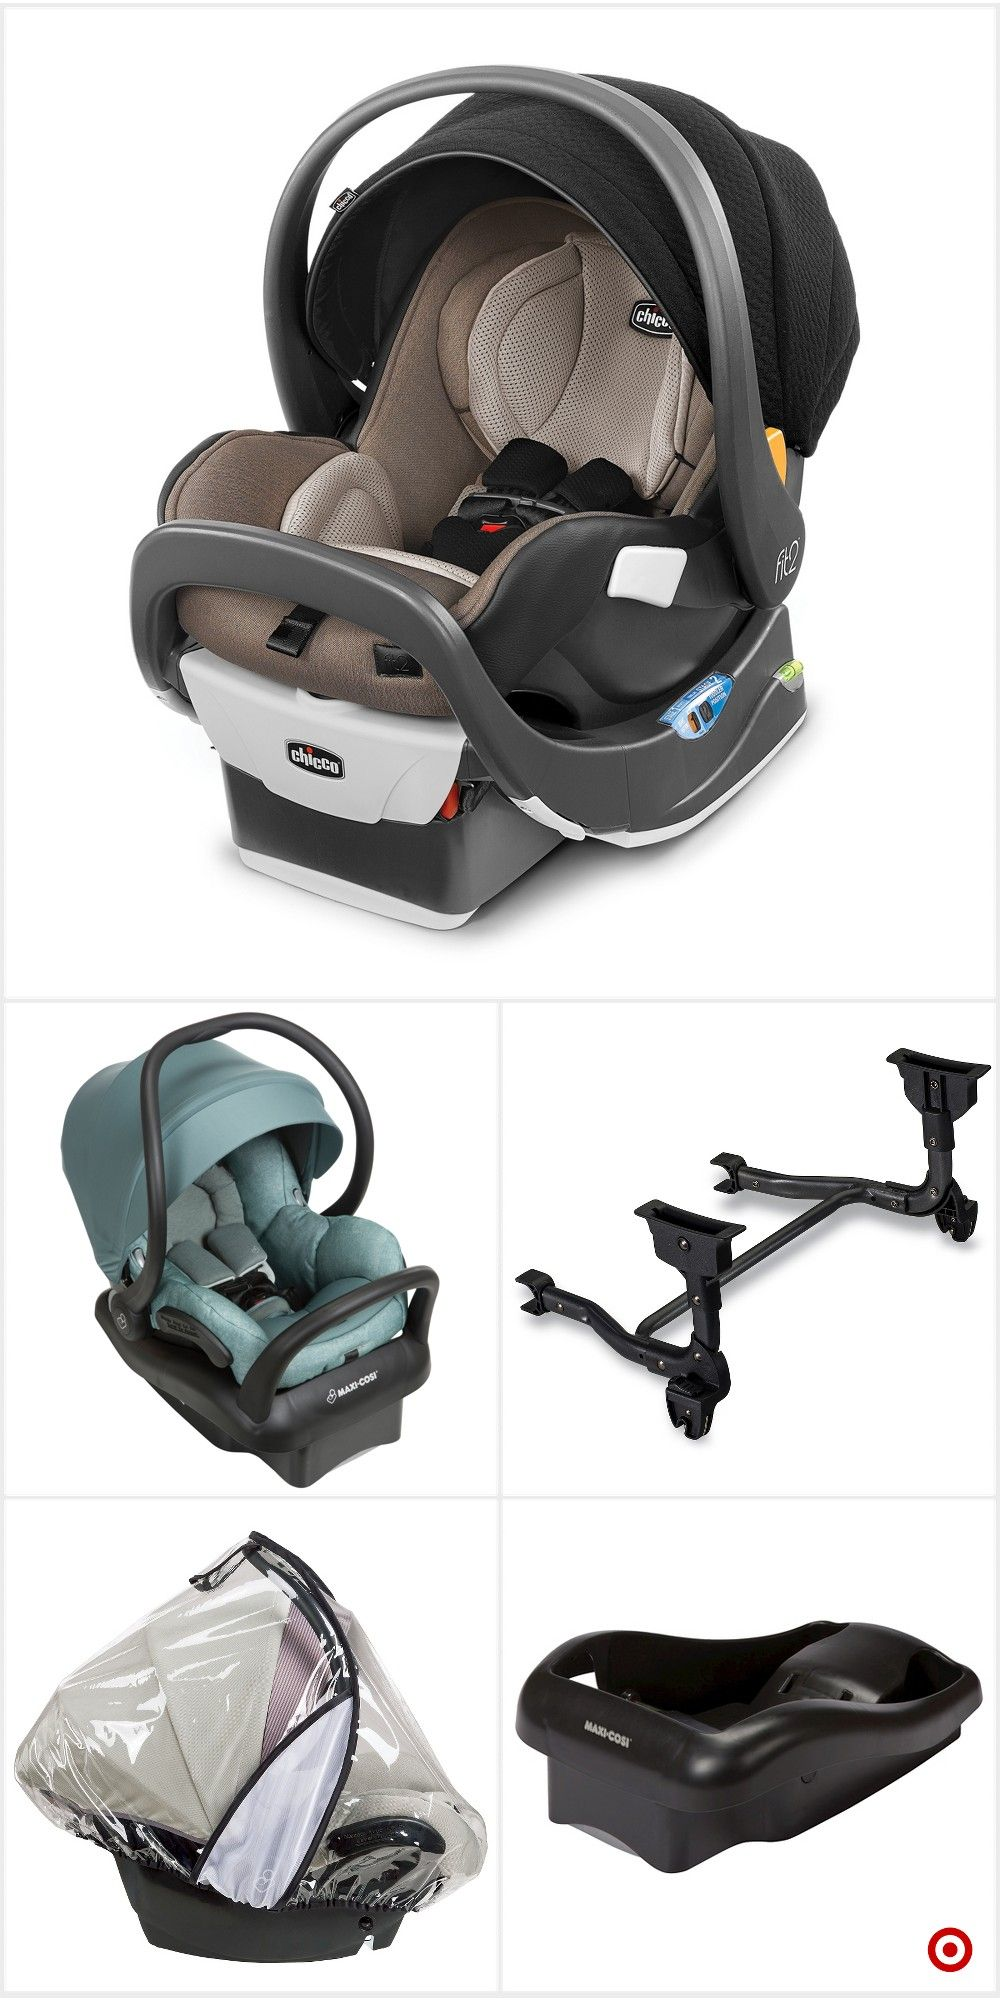 Baby Car Seats At Target Shop Target For Infant Car Seats You Will Love At Great Low